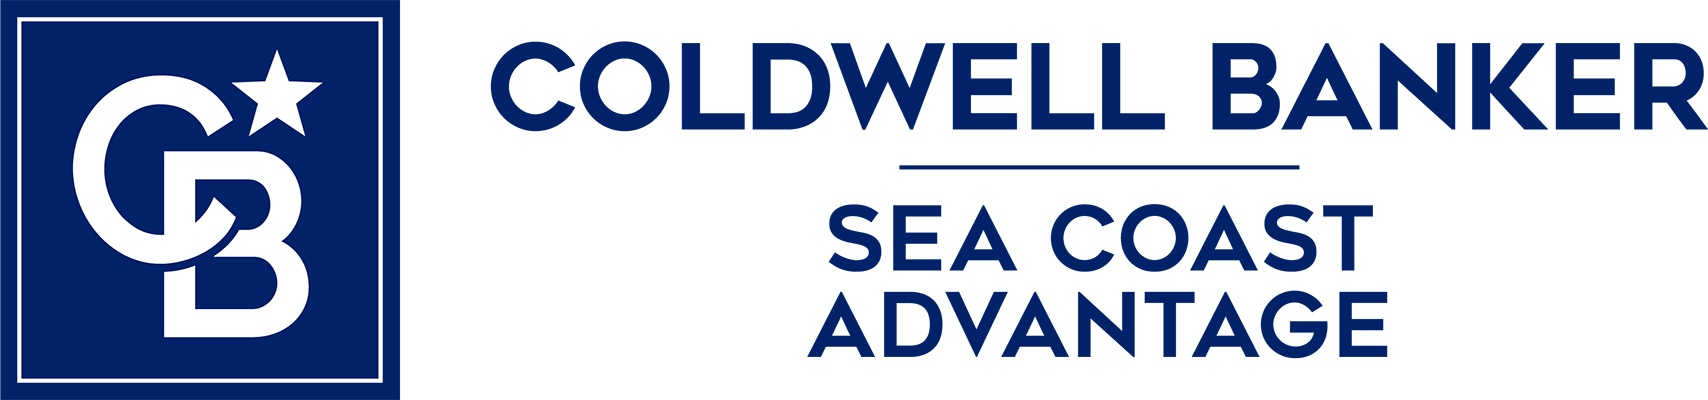 Joel Sheesley - Coldwell Banker Sea Coast Advantage Realty Logo